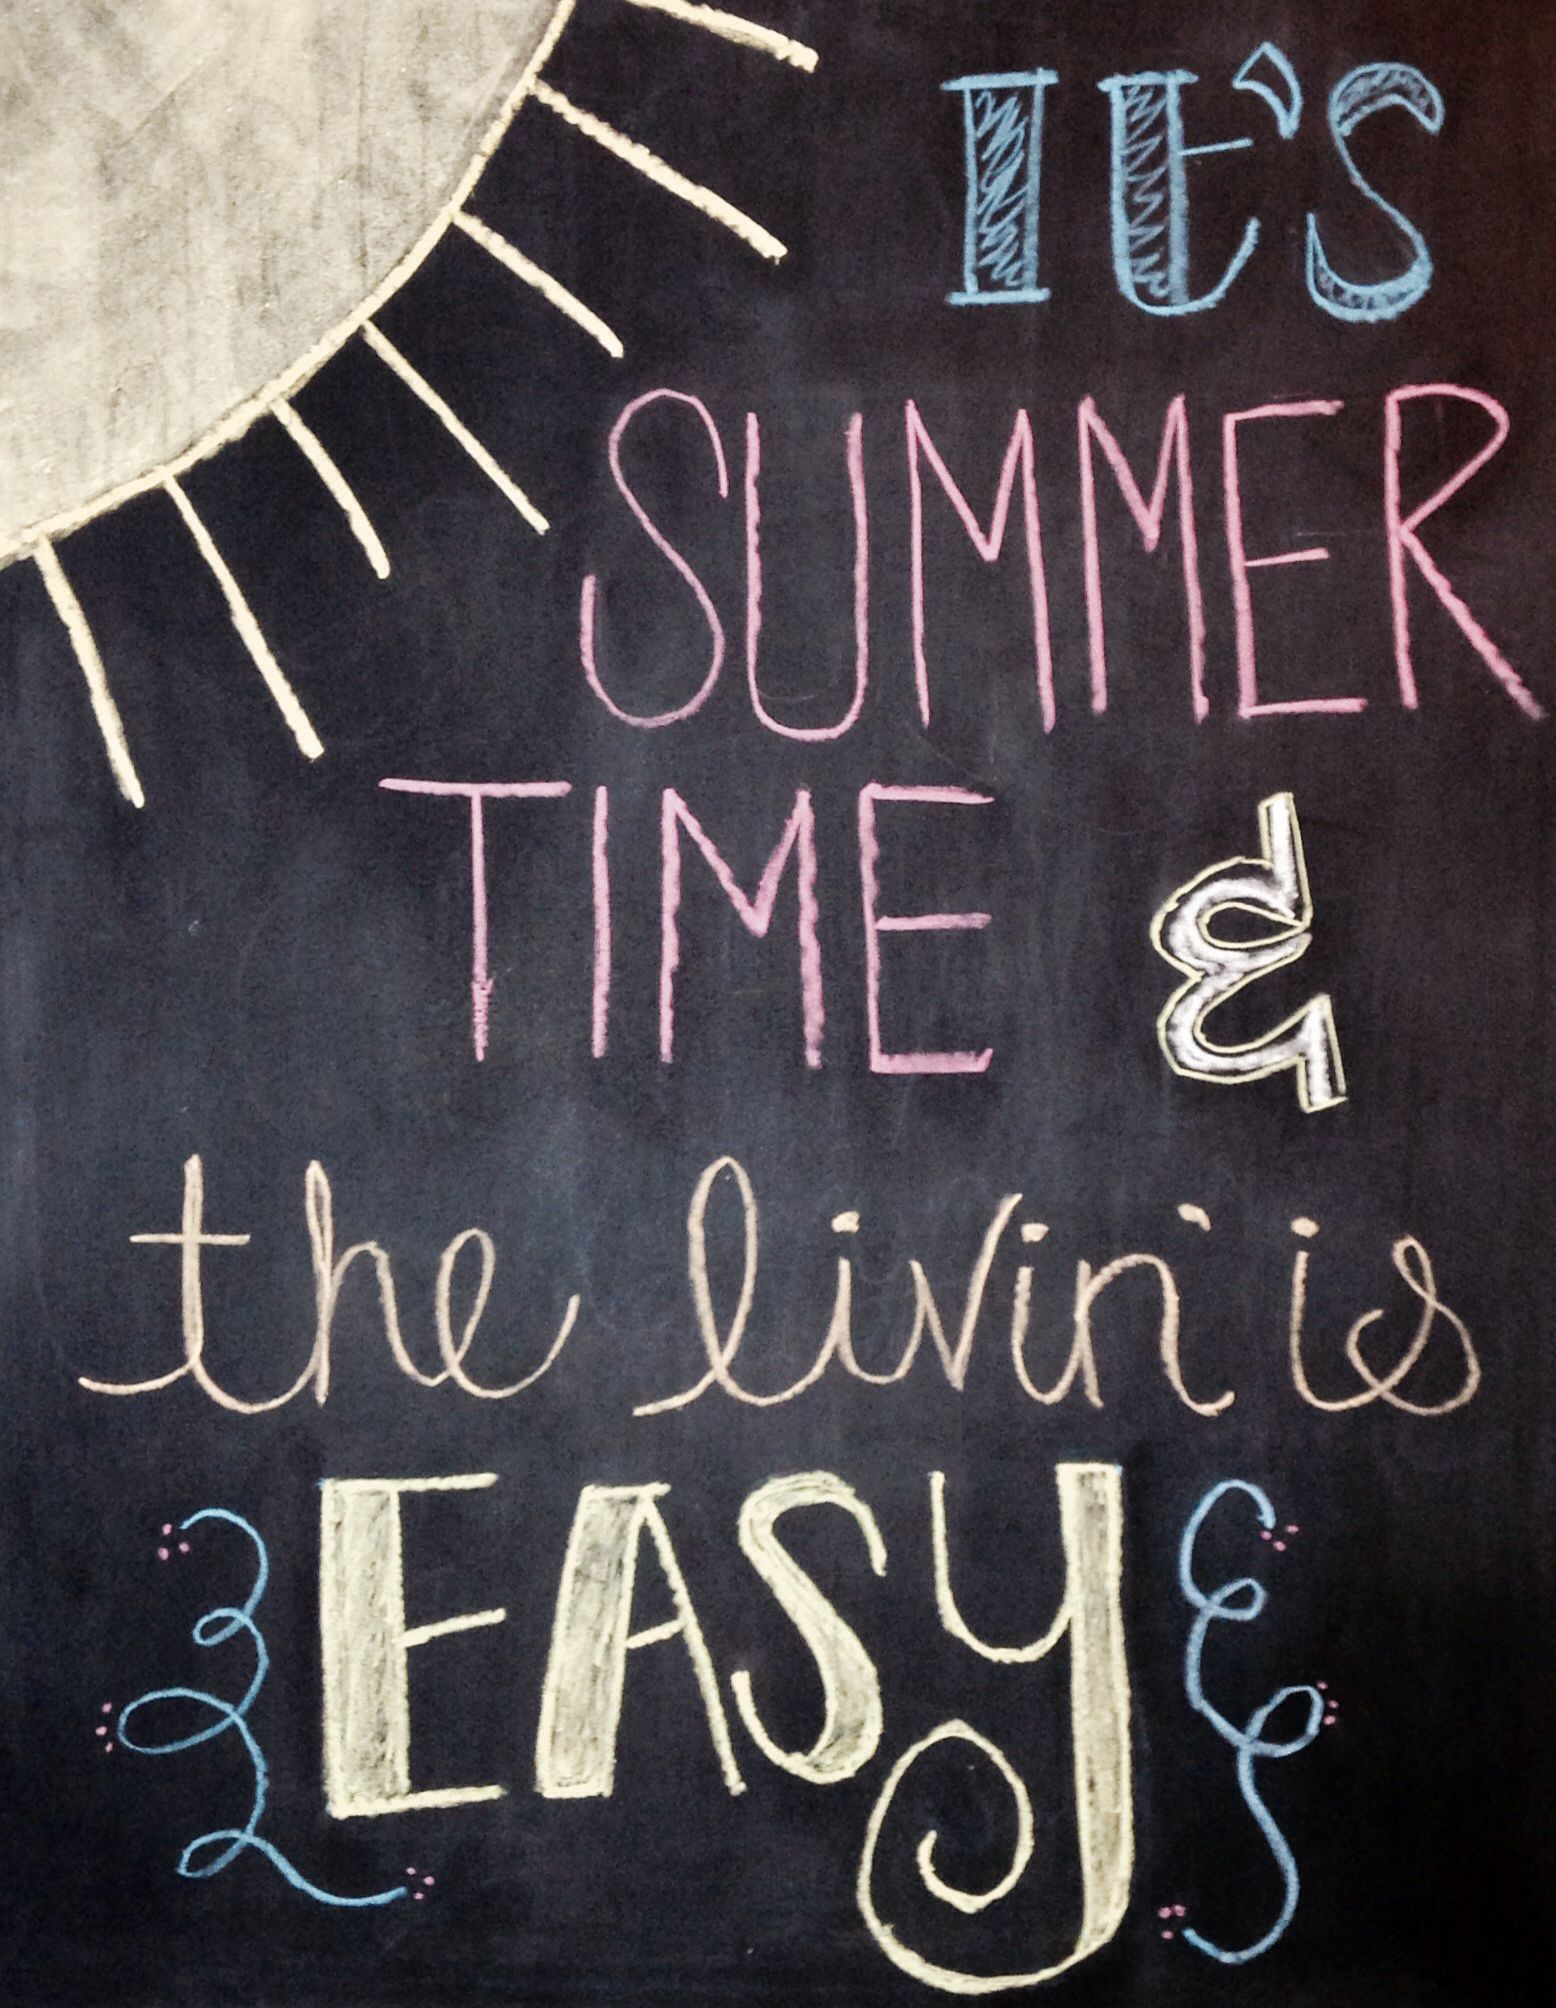 Chalkboard Designs Summertime Chalkboard Art Google Search Chalkboard Drawings